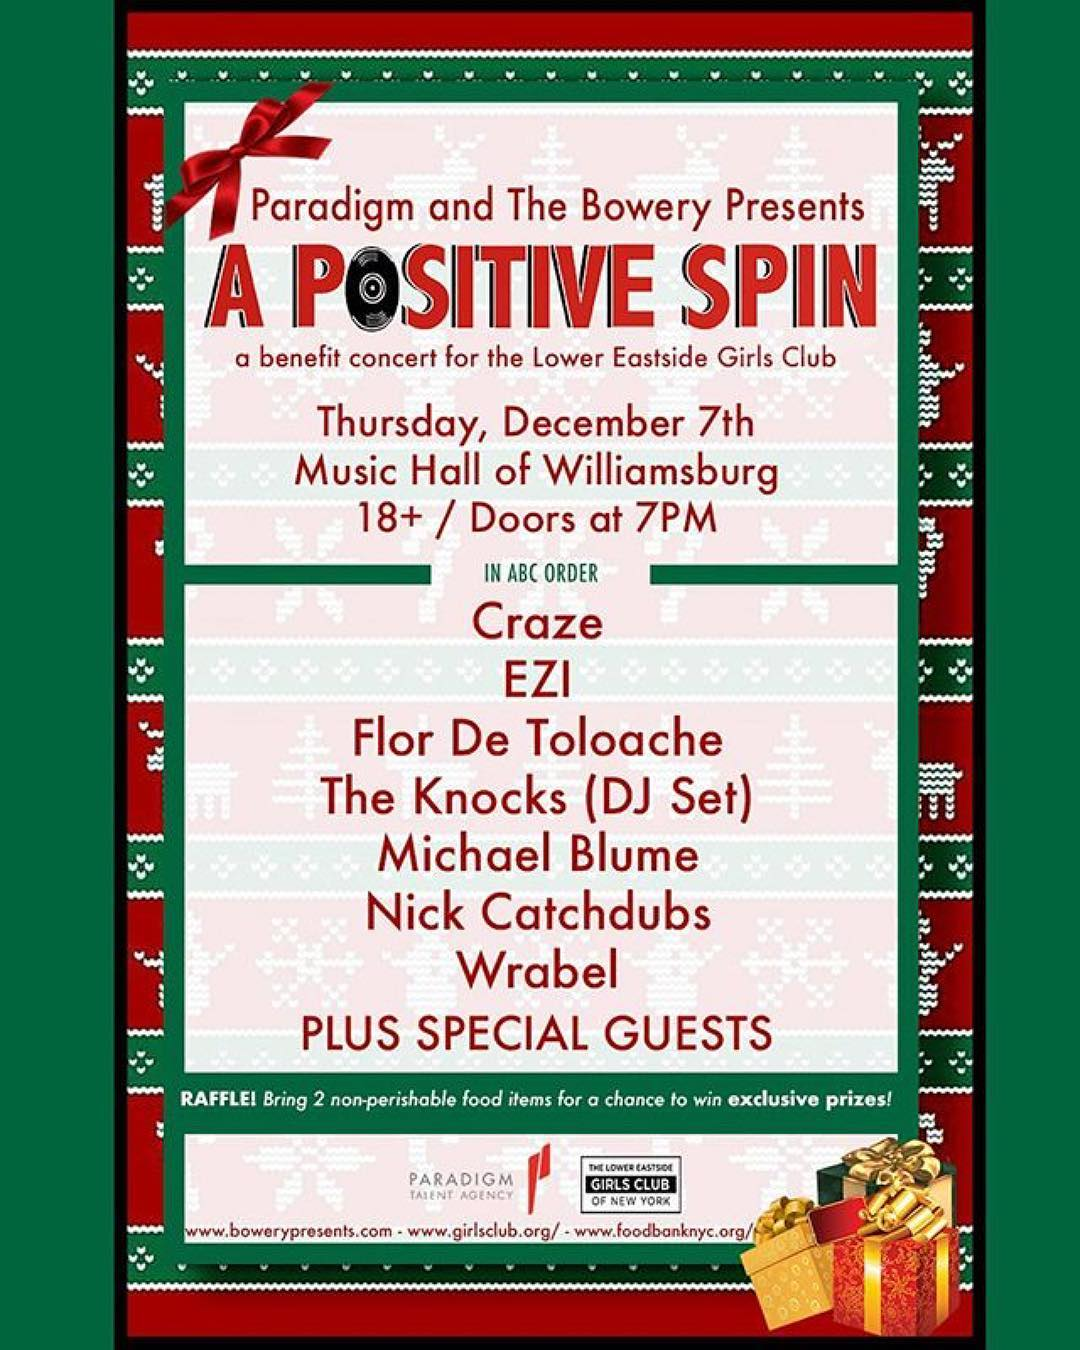 A Positive Spin - Dec 7 NYC